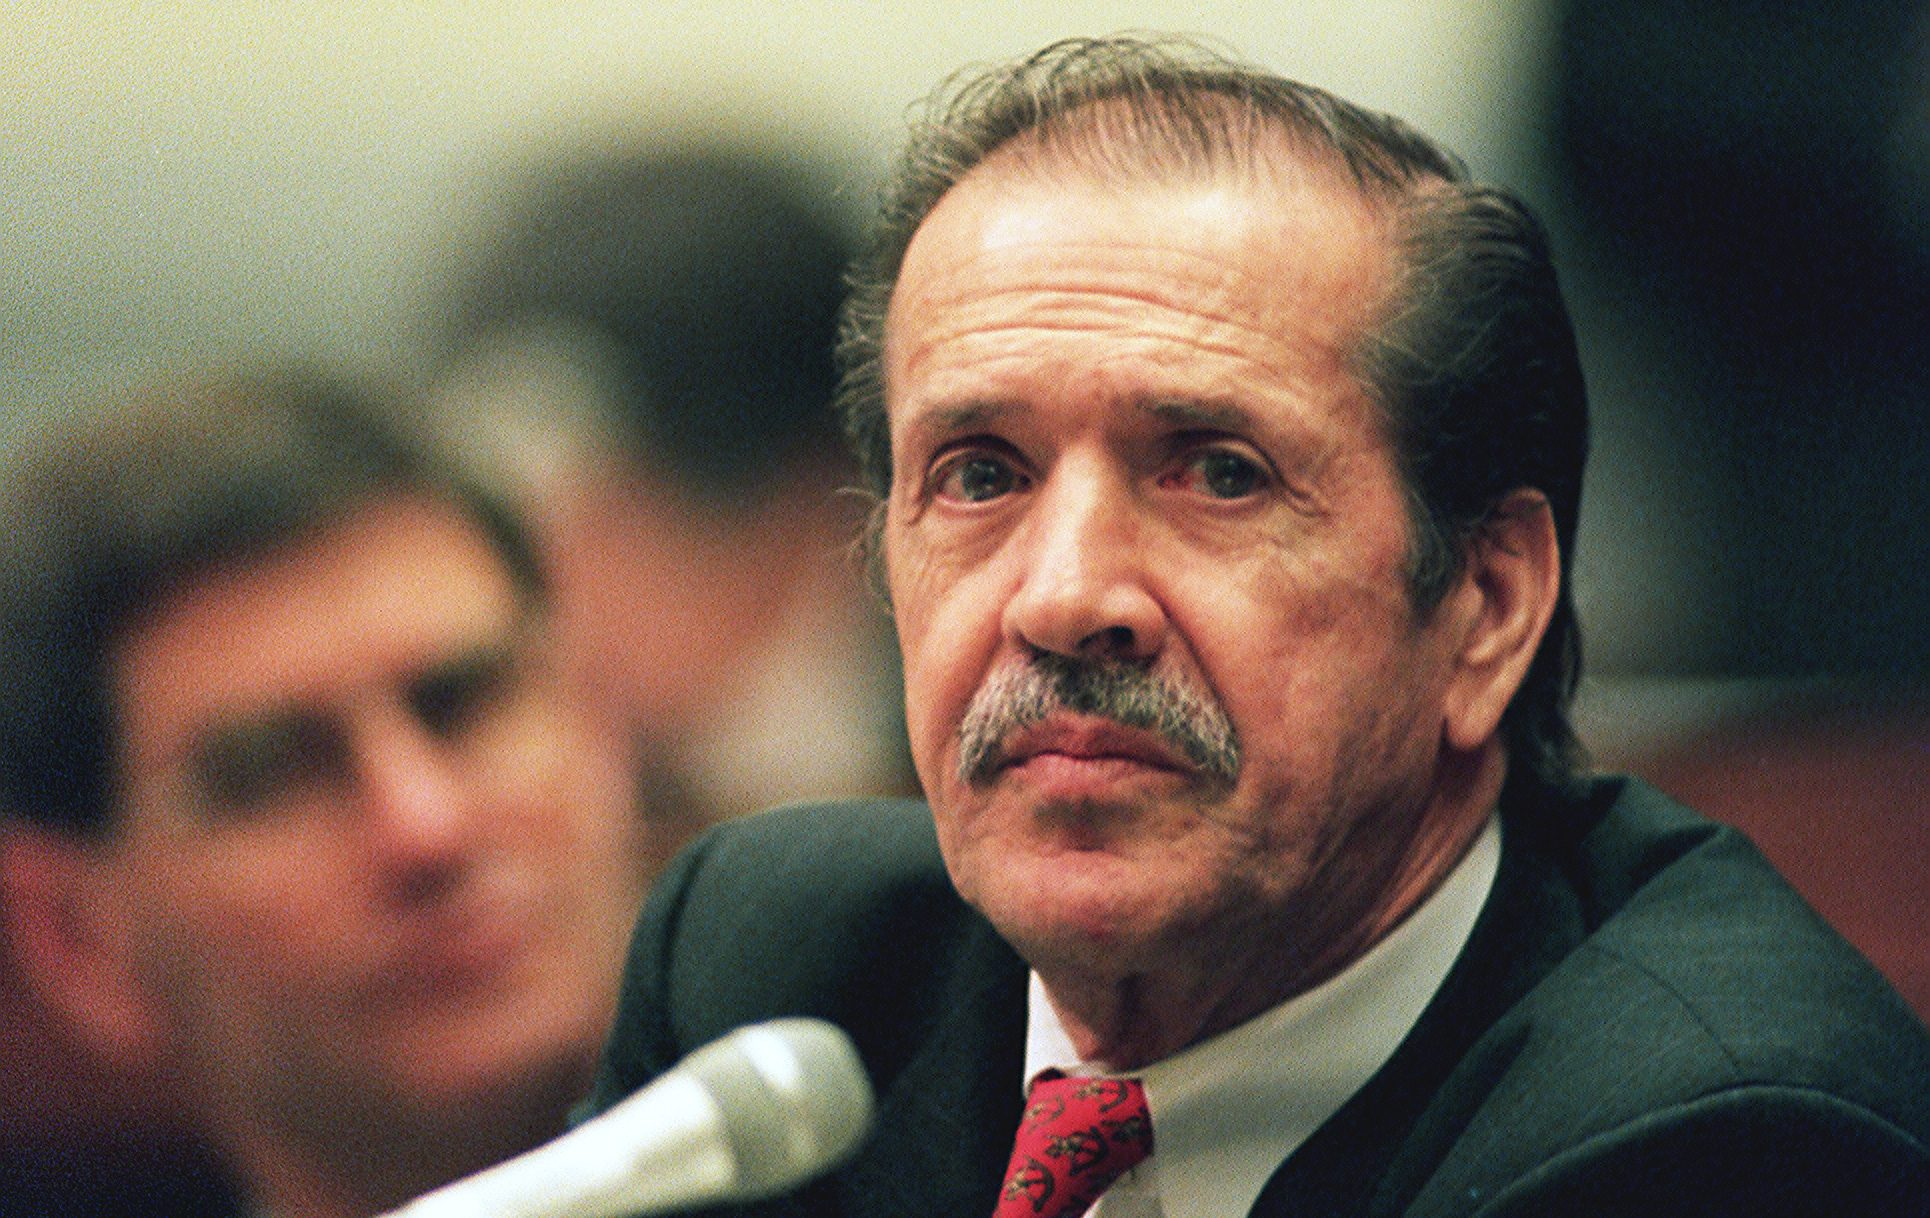 5/21/97.QUADRENNIAL DEFENSE REVIEW--Sonny Bono, R-Calif., during House National Security hearing on the Quadrennial Defense Review..CONGRESSIONAL QUARTERLY PHOTO BY DOUGLAS GRAHAM